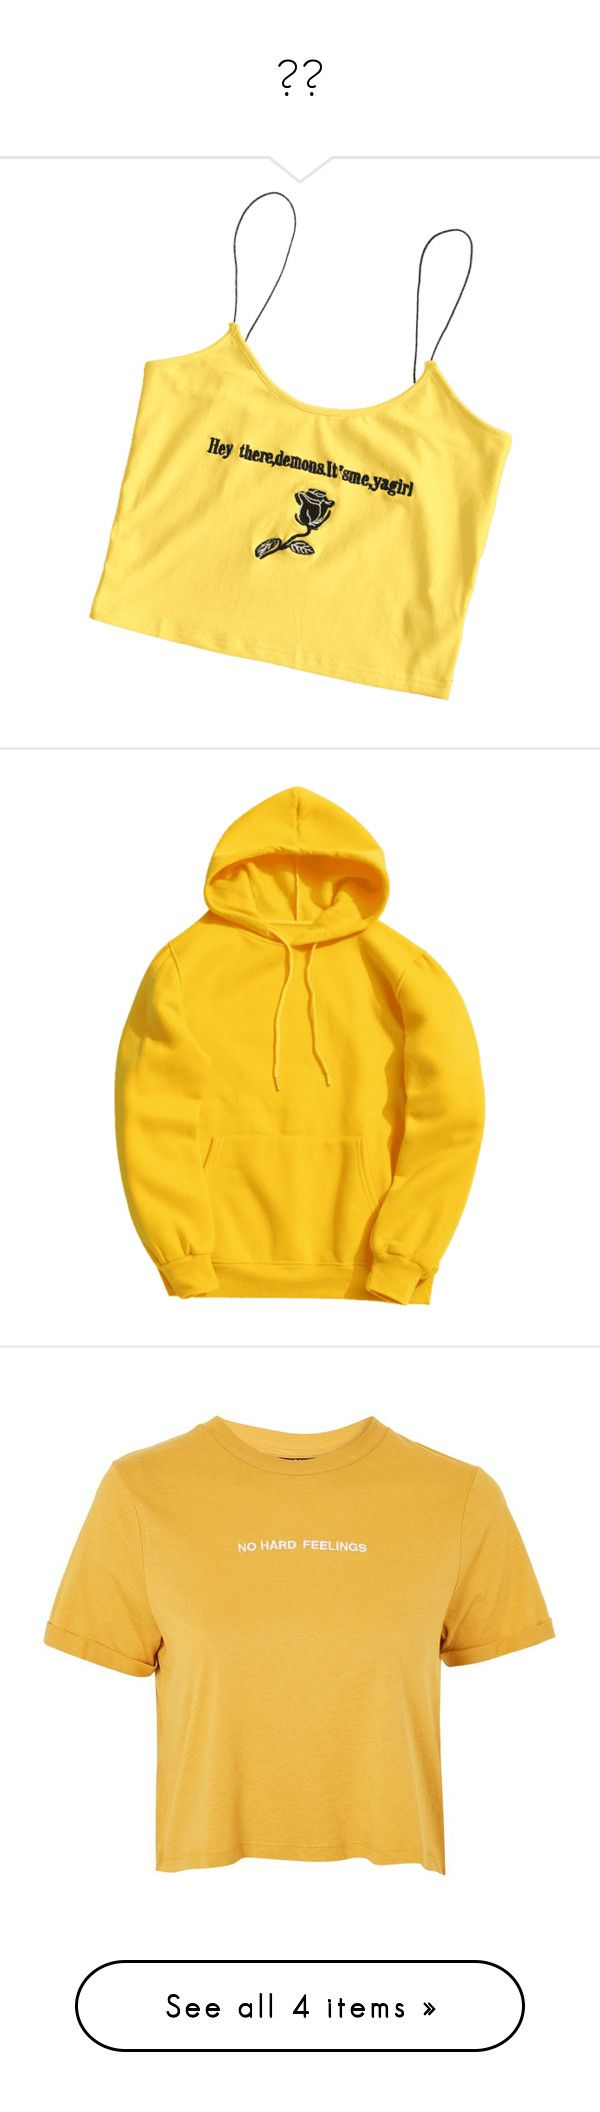 """""""🍋🍌"""" by no-crying ❤ liked on Polyvore featuring intimates, camis, yellow camisole, yellow cami, tops, hoodies, zaful, fleece hoodies, yellow hooded sweatshirt and fleece tops"""